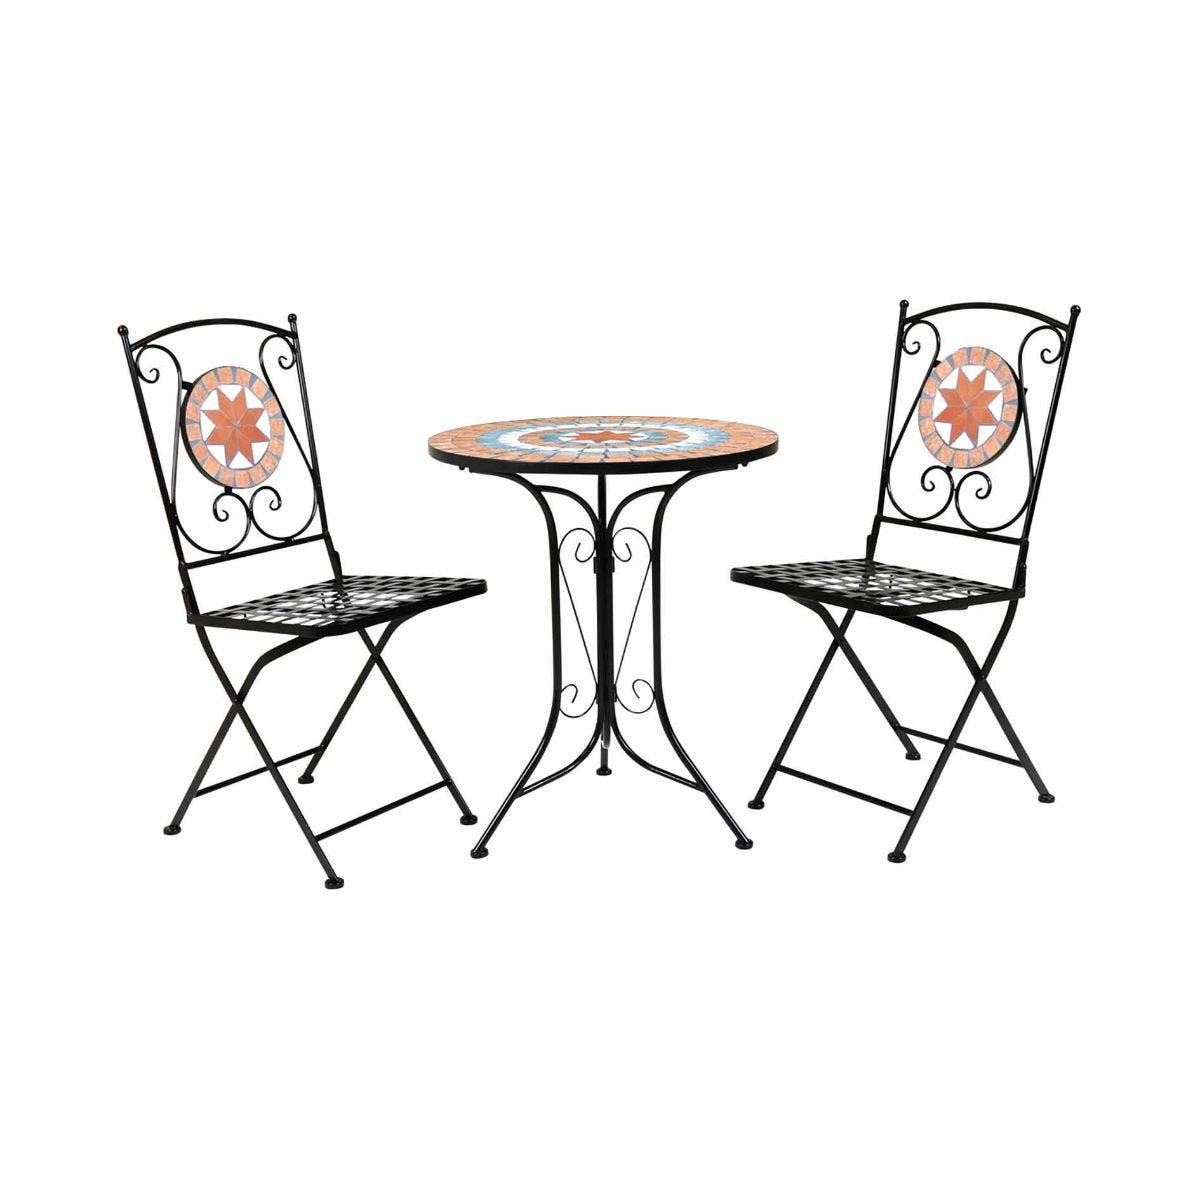 Charles Bentley Terracotta Mosaic 3 Piece Garden Table and Chairs Set, Orange